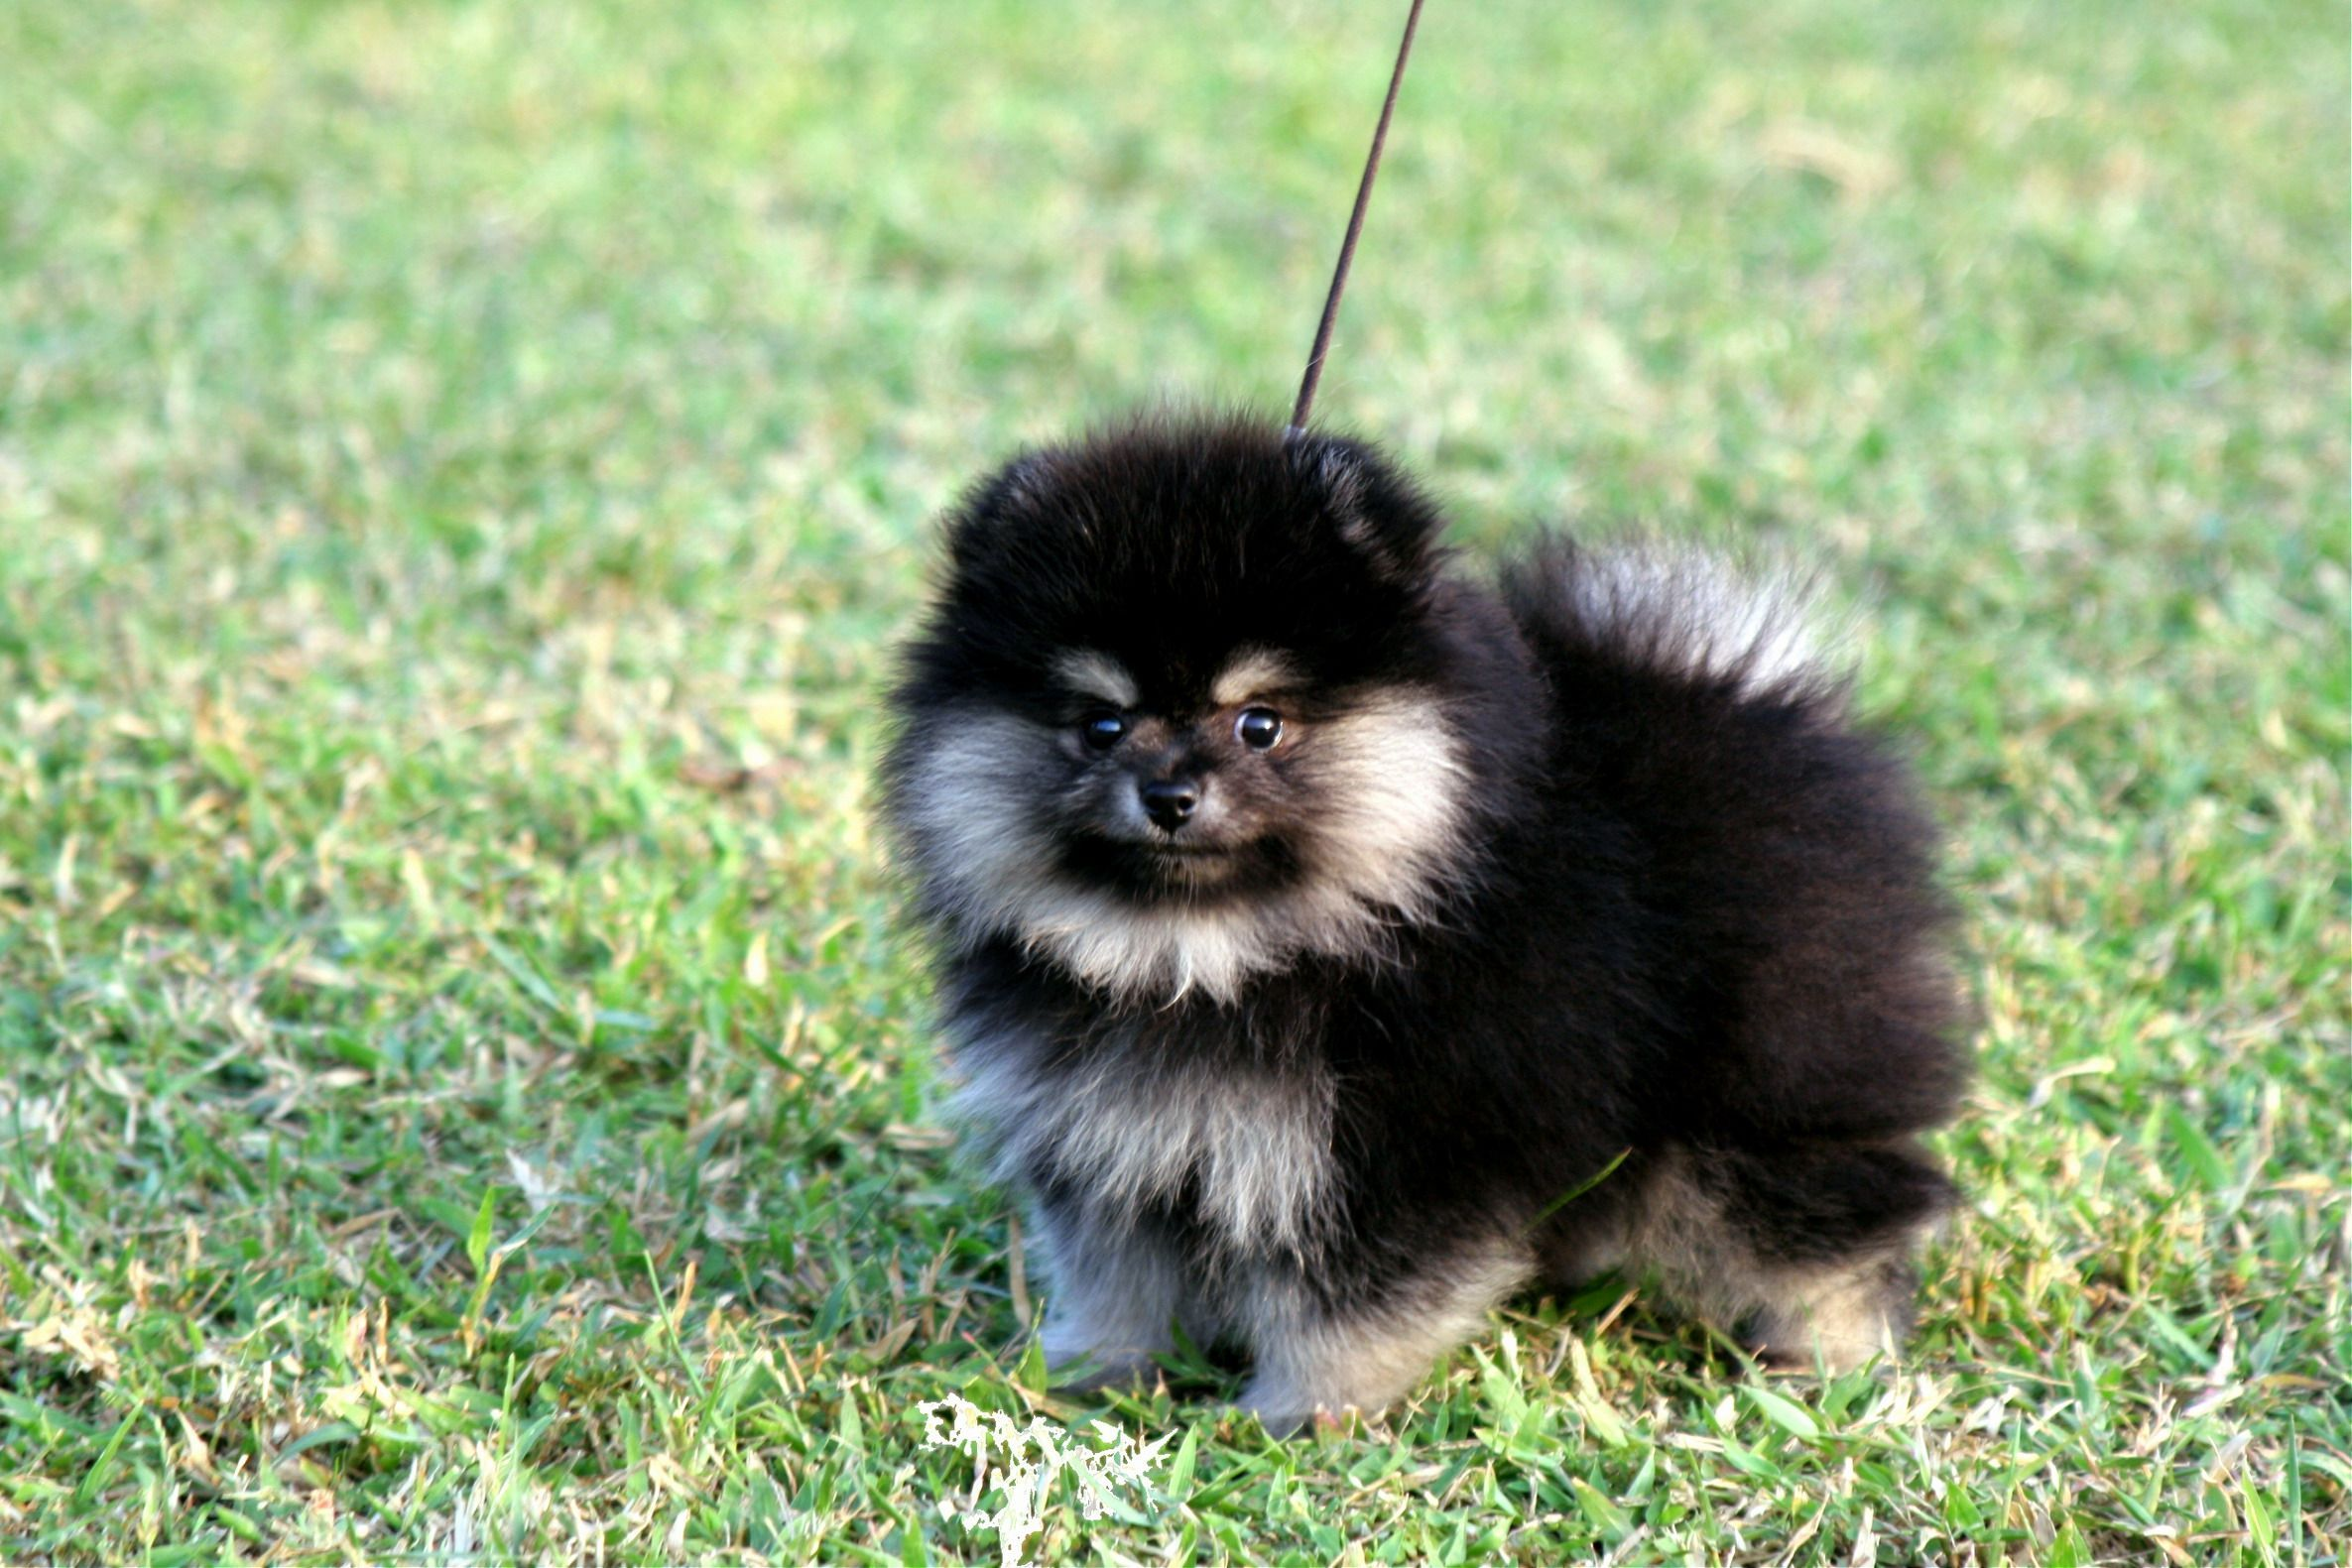 Black Teacup Pomeranian Puppies Black Tan Pomeranian Female Age Of 2 Months Best Small Dog Breeds Best Small Dogs Pomeranian Puppy